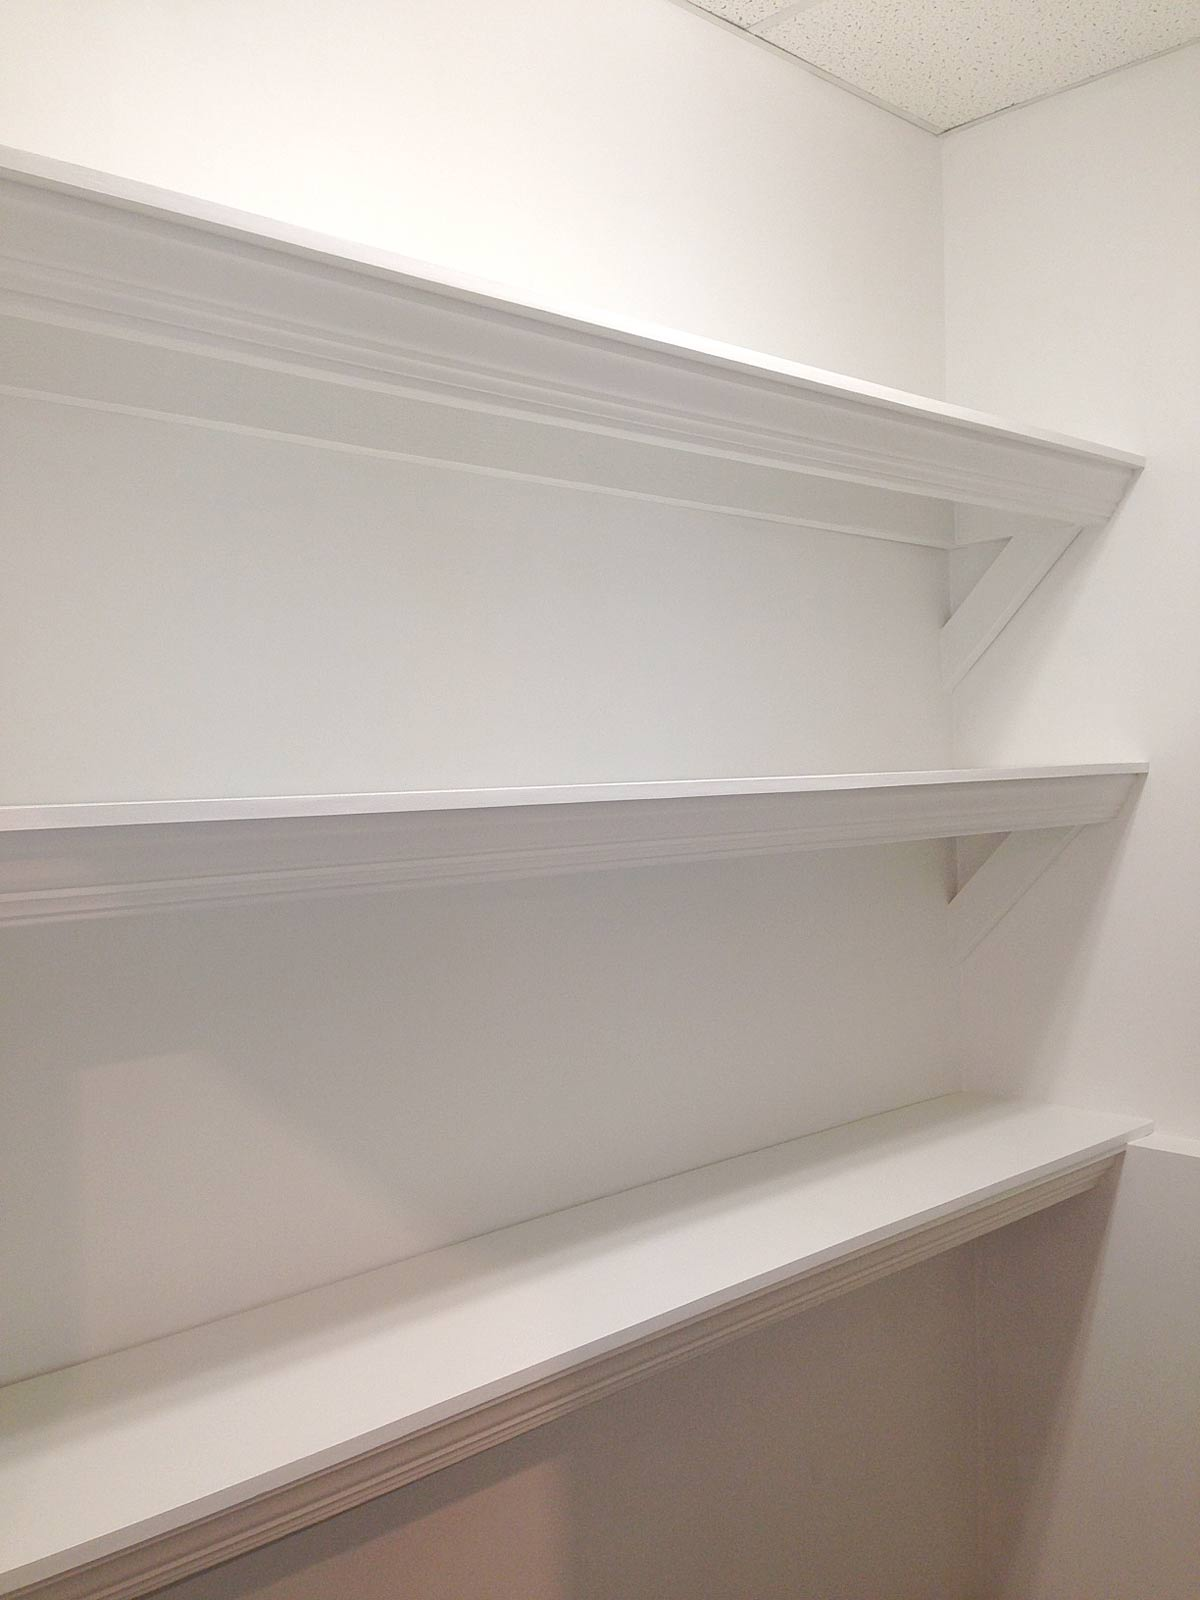 How To Build Sturdy Shelves Plus Tips For Working With